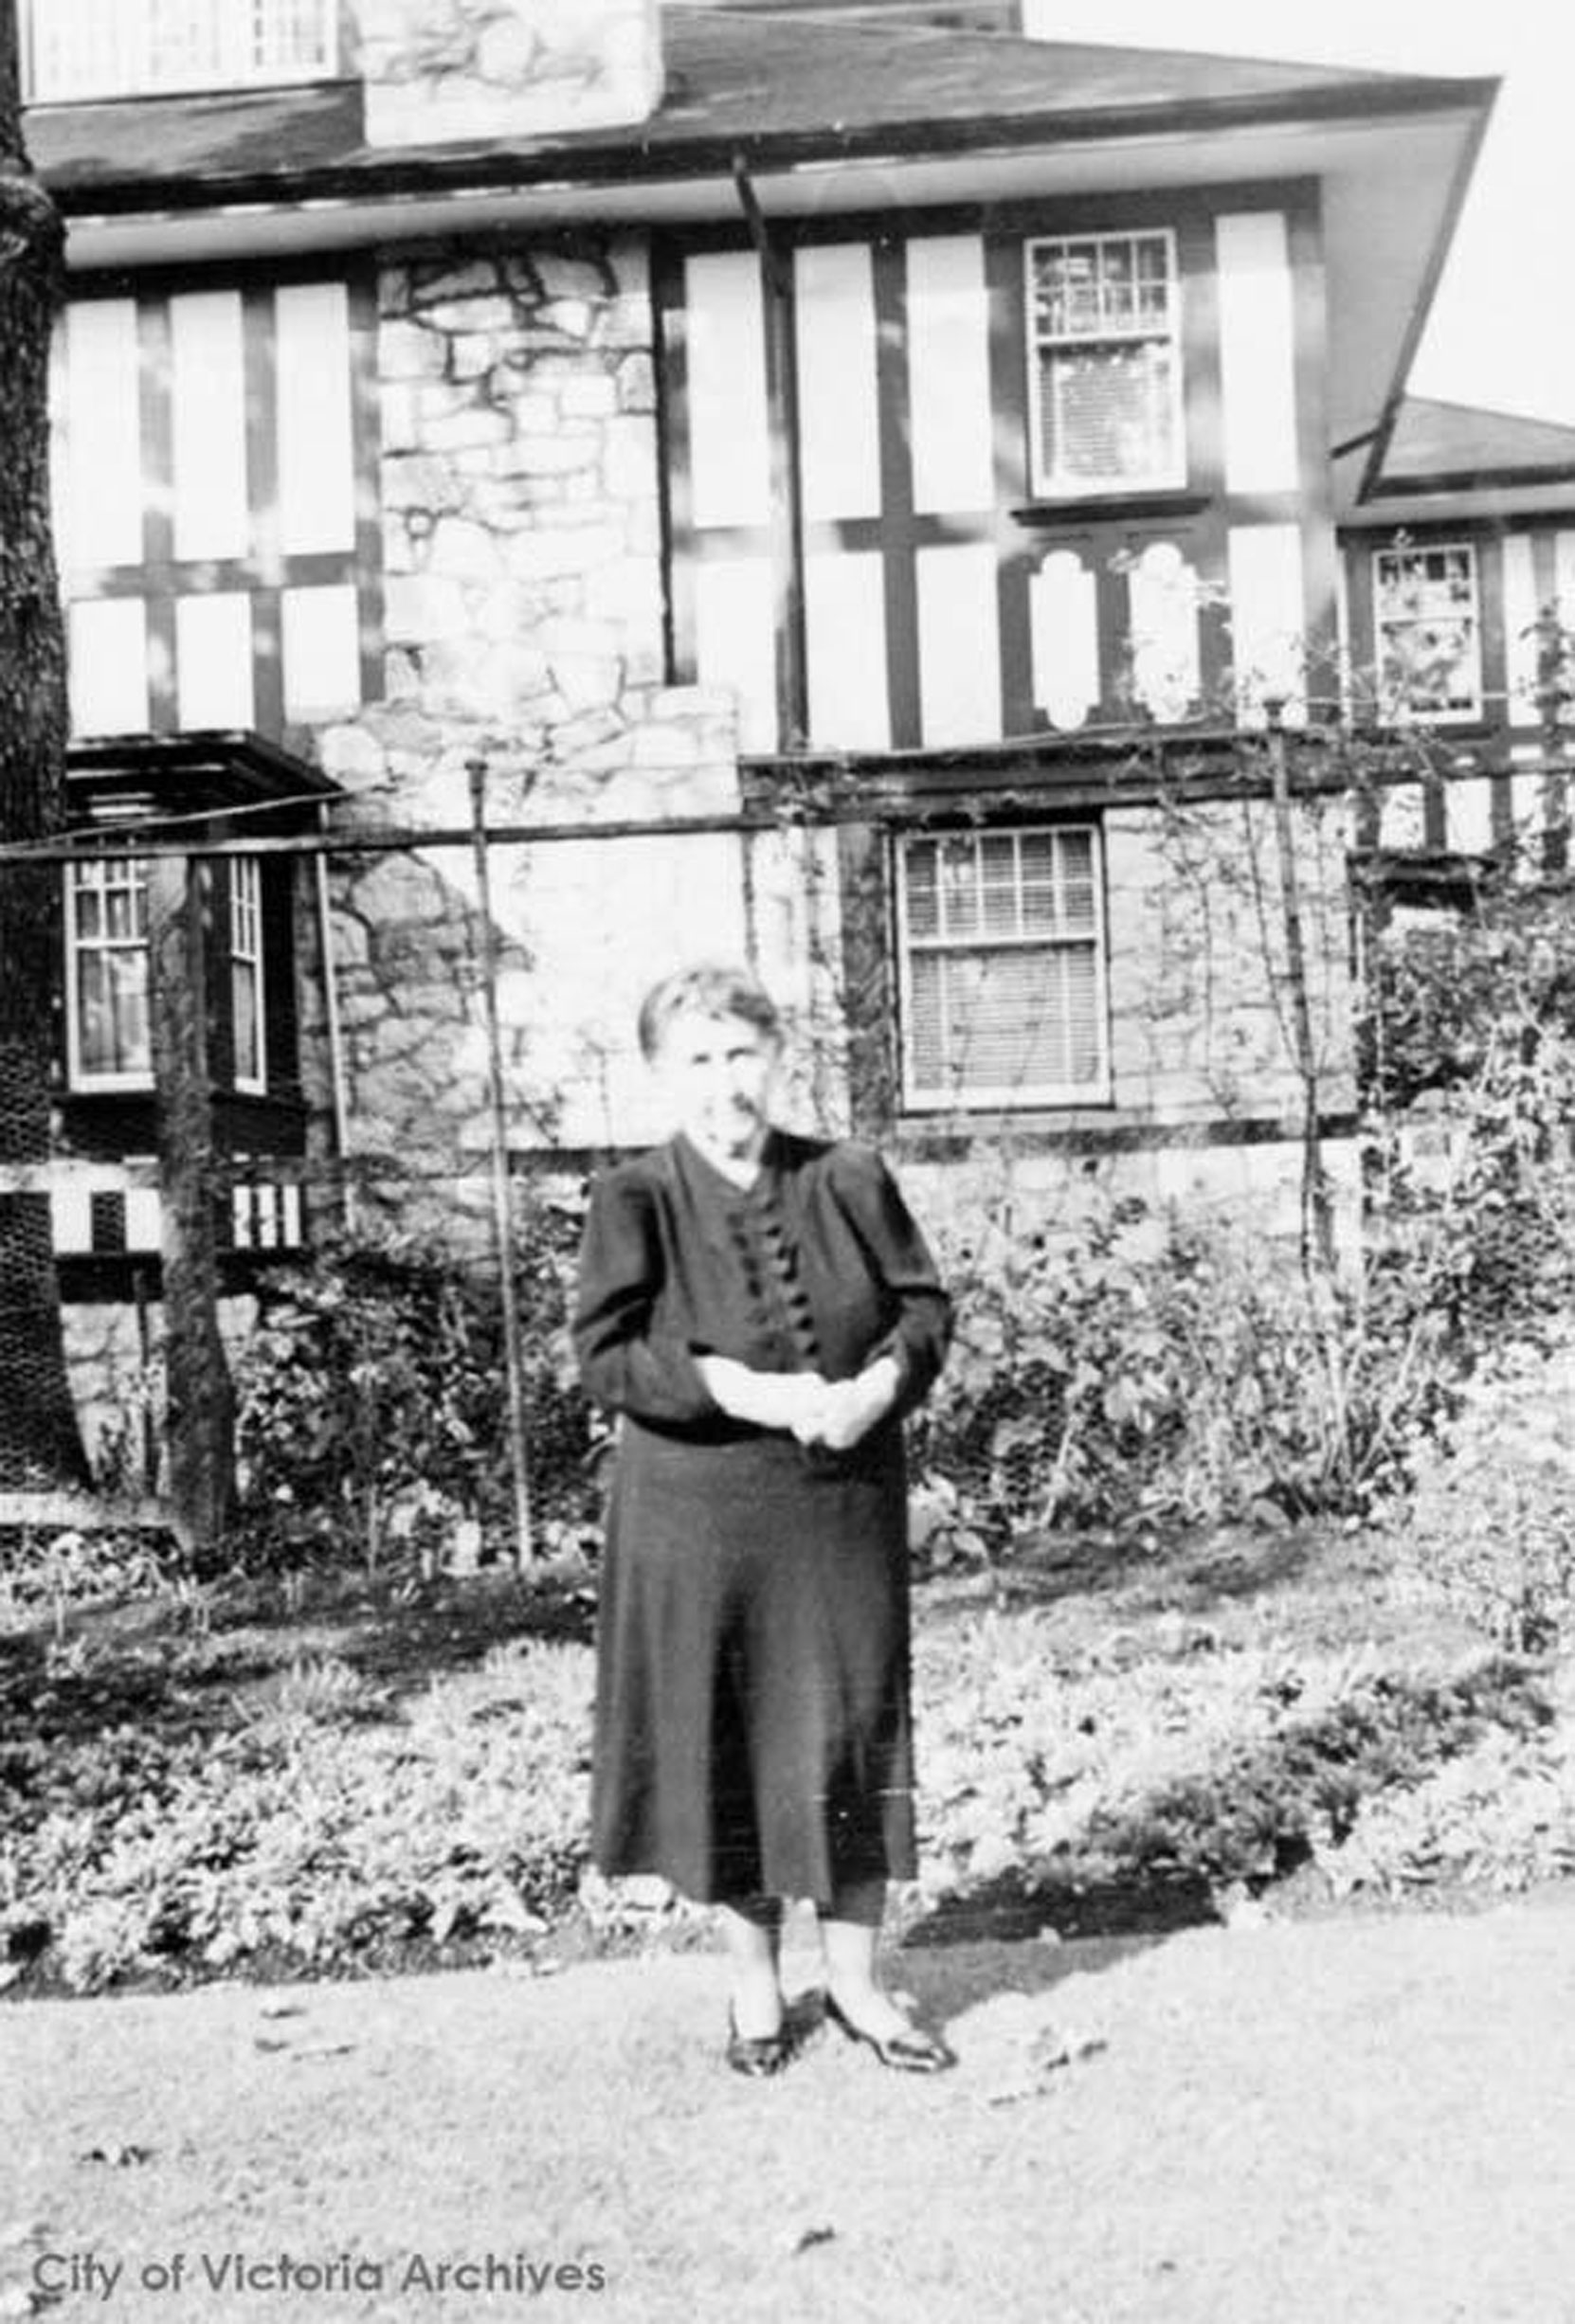 Jennie Butchart, circa 1940. The house is possibly 906 St. Charles Street in Victoria's Rockland district, where Robert and Jennie Butchart moved circa 1939-1940. (City of Victoria Archives photo M00449)